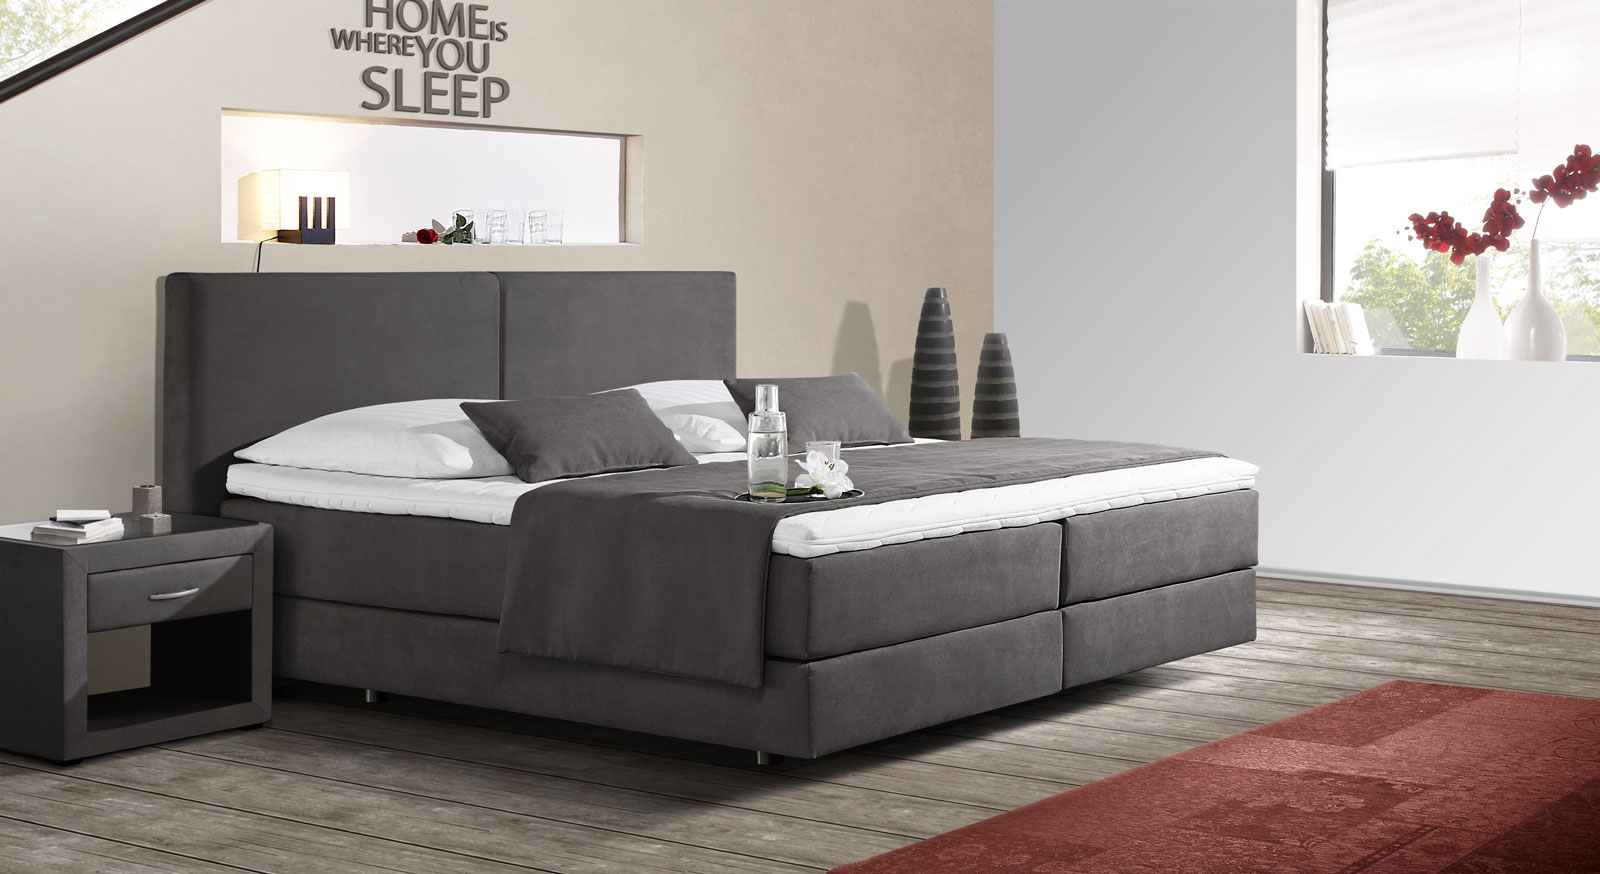 Boxspringbett Anthrazit Boxspringbett Mit Schwebeoptik Z B In Anthrazit Carrara